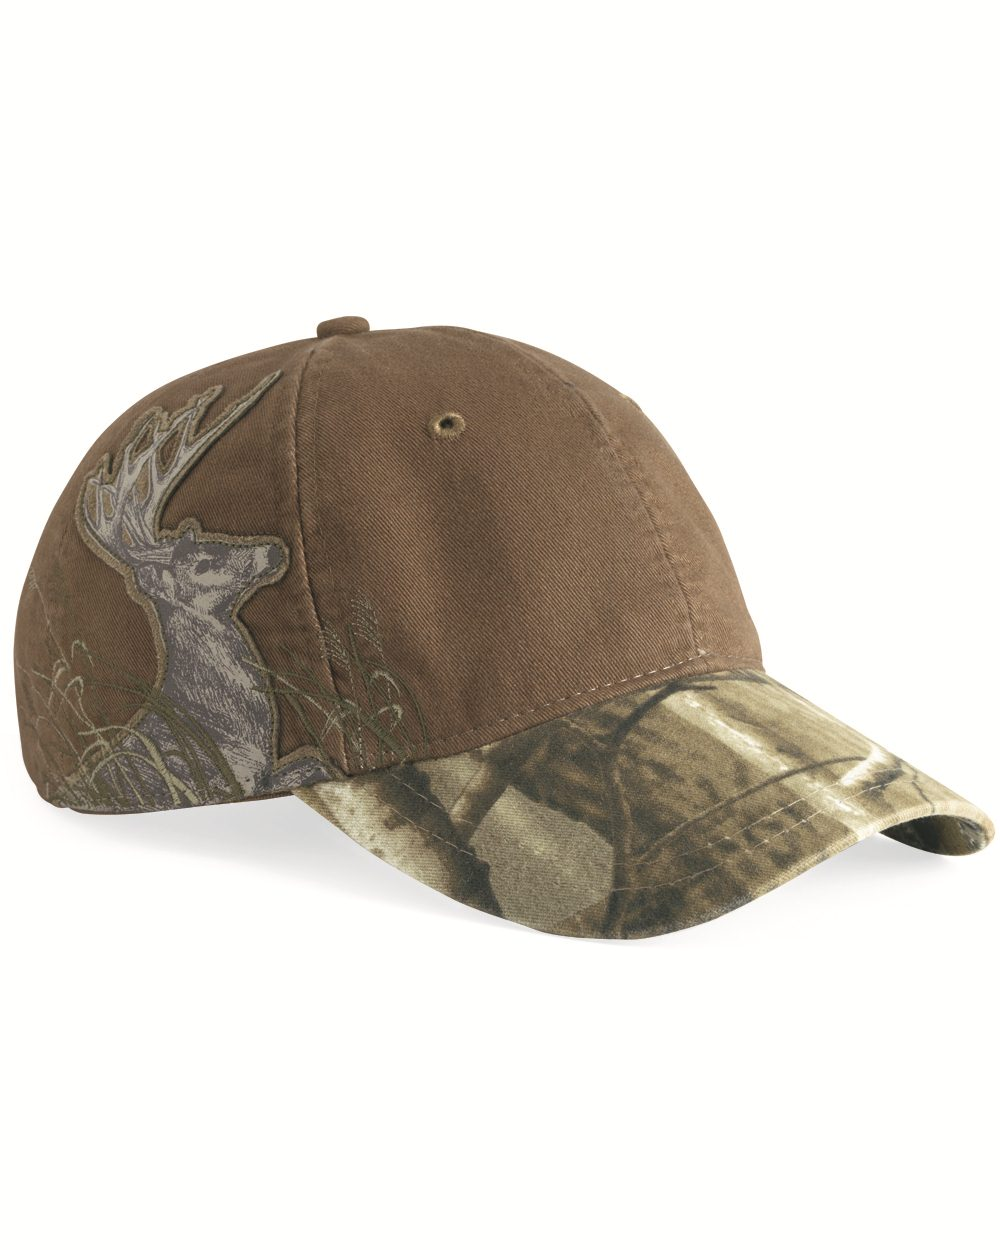 DRI DUCK Buck Rawhide Applique Cap - 3312